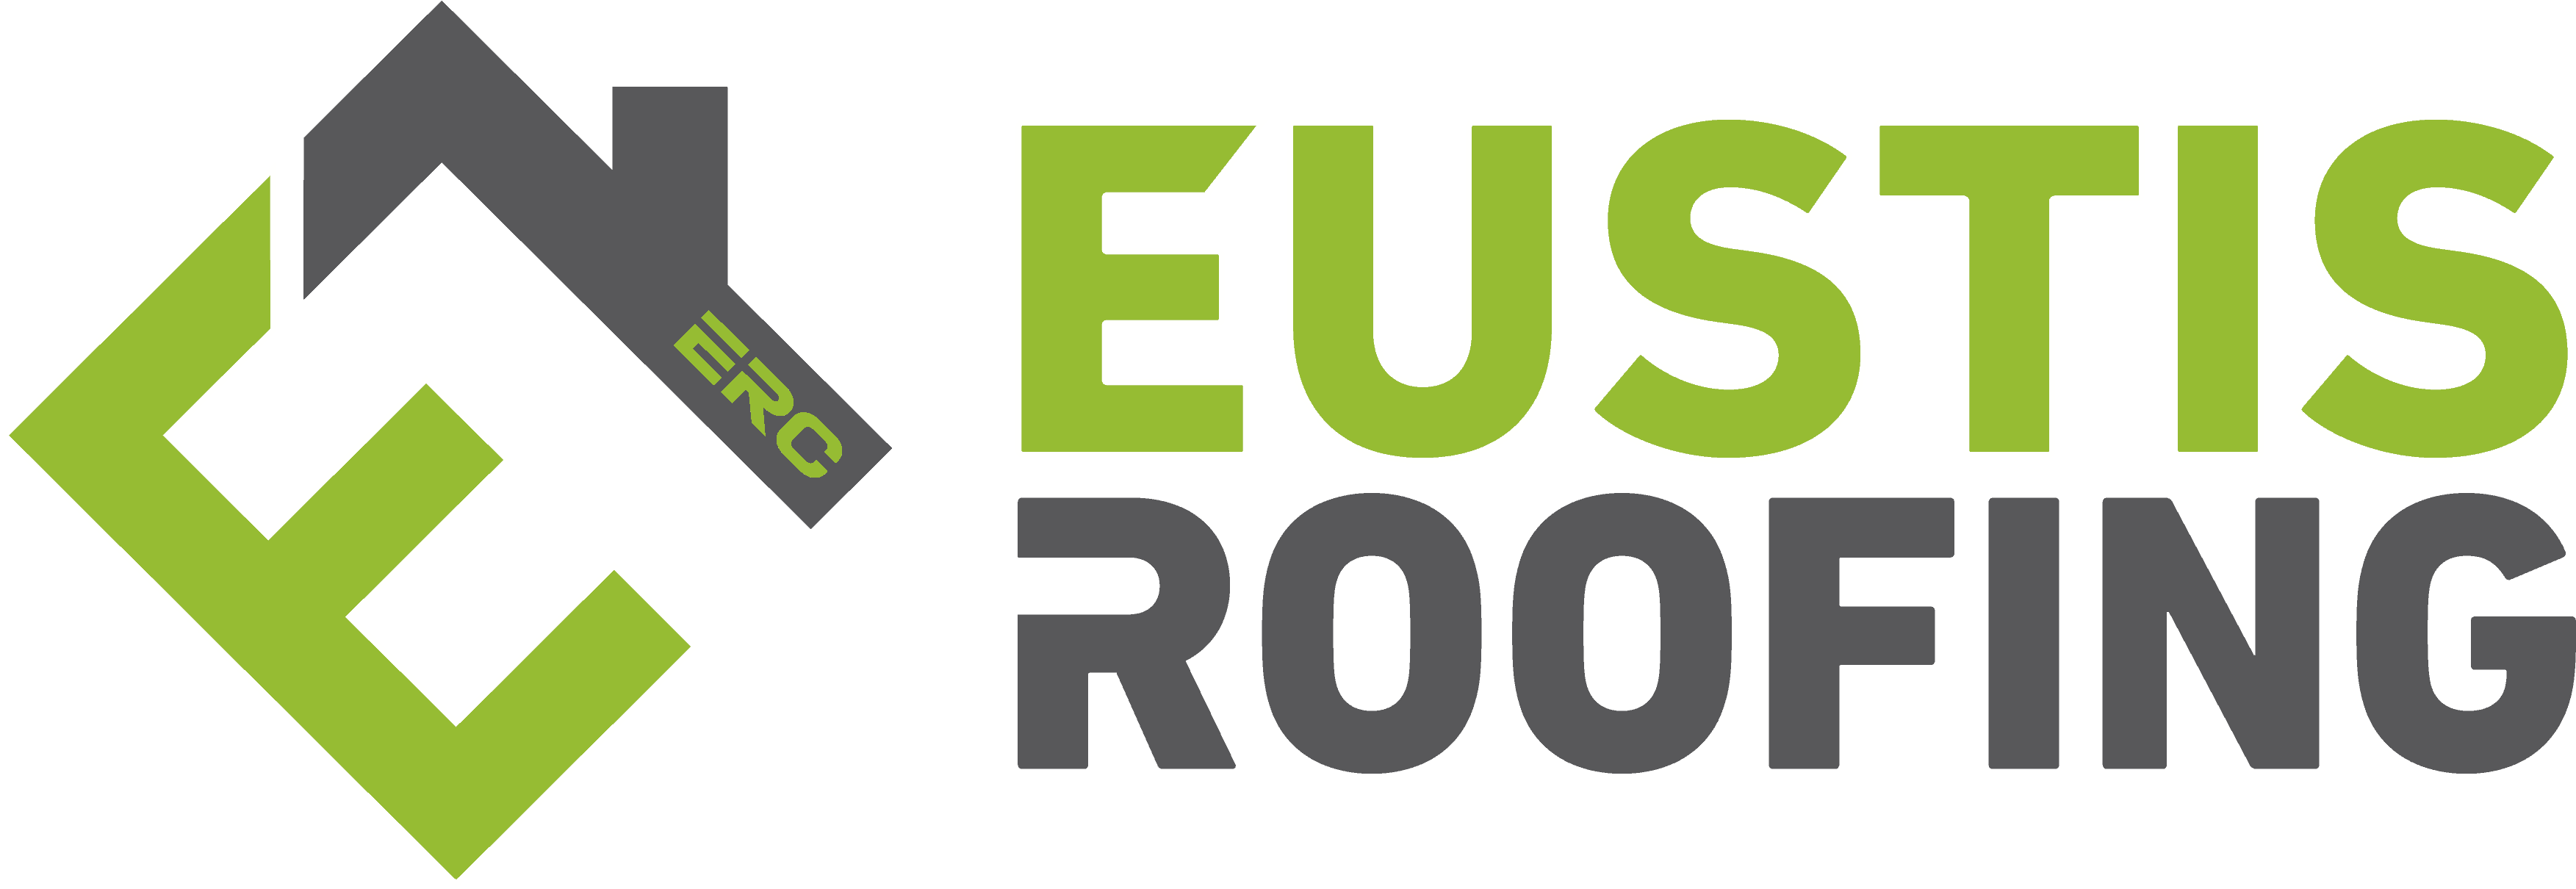 Eustis Roofing Company in Tavares, FL